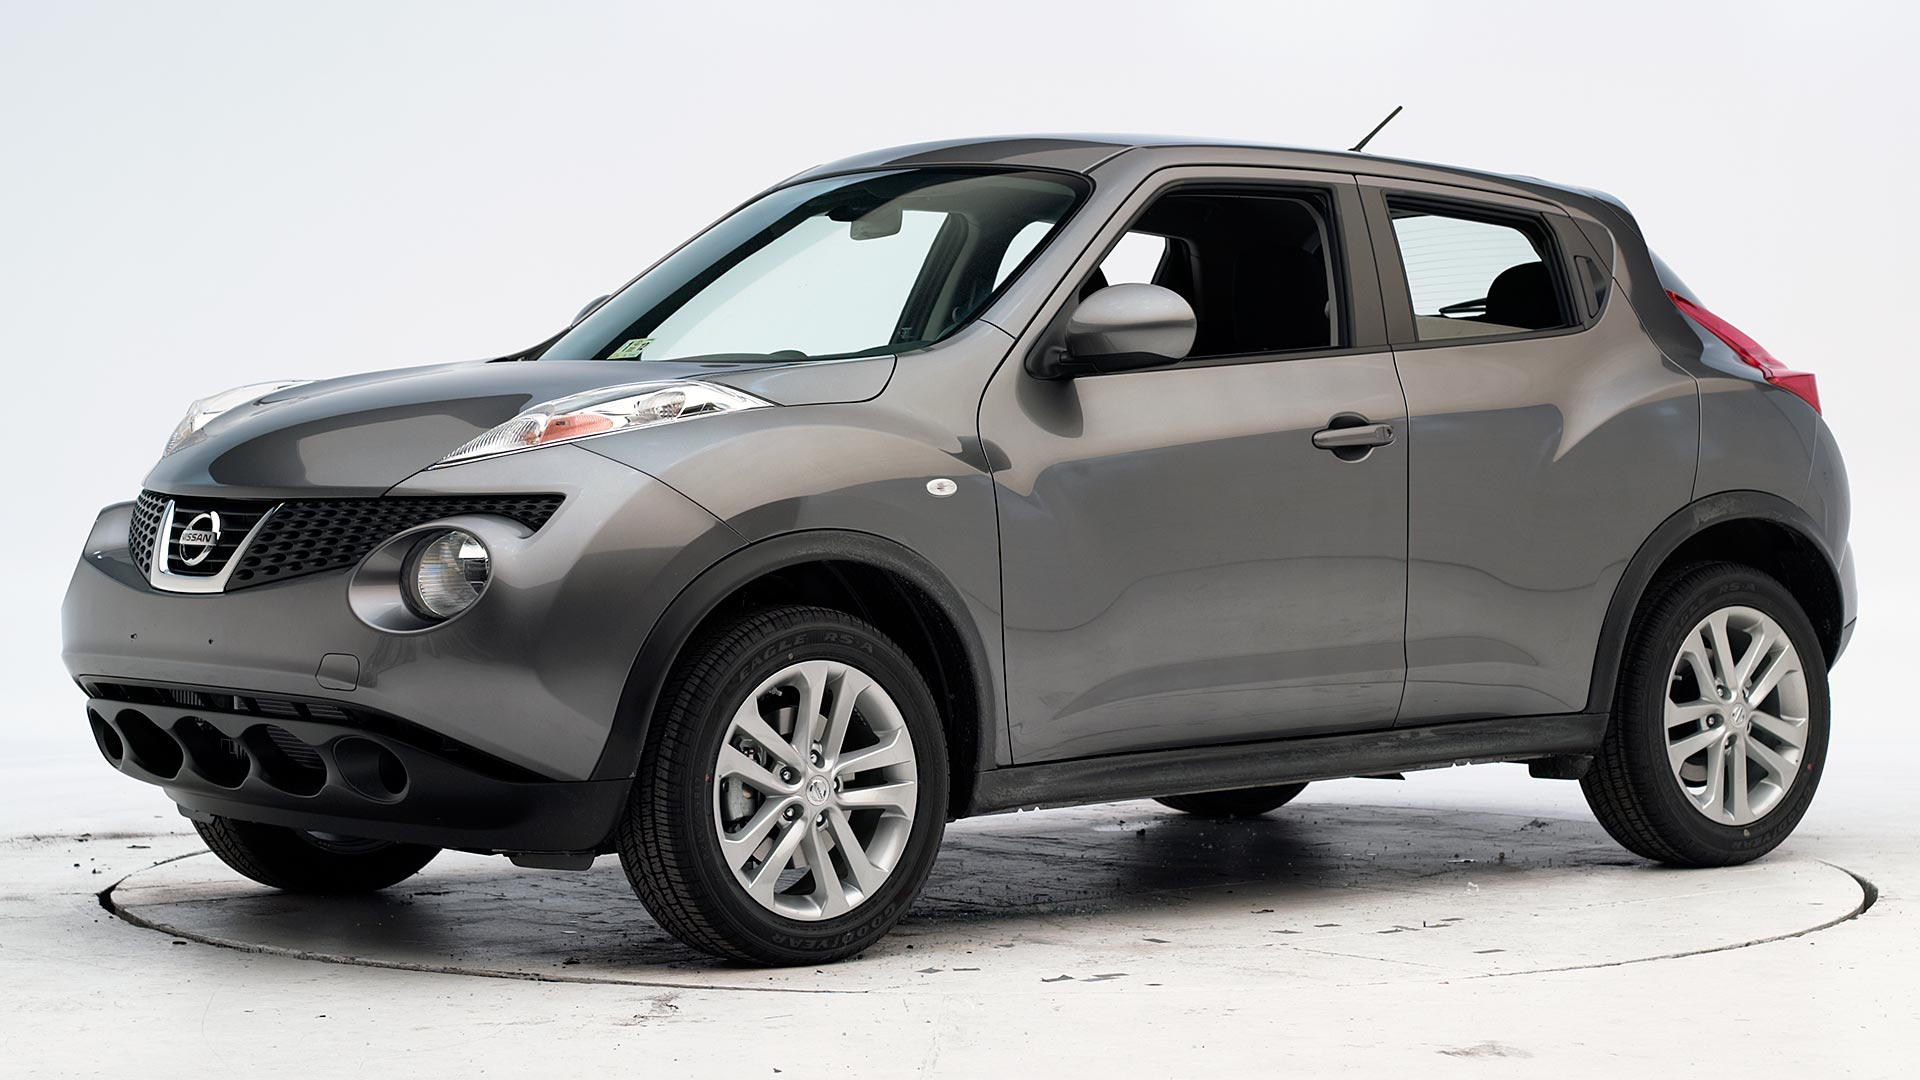 2013 Nissan Juke 4-door hatchback